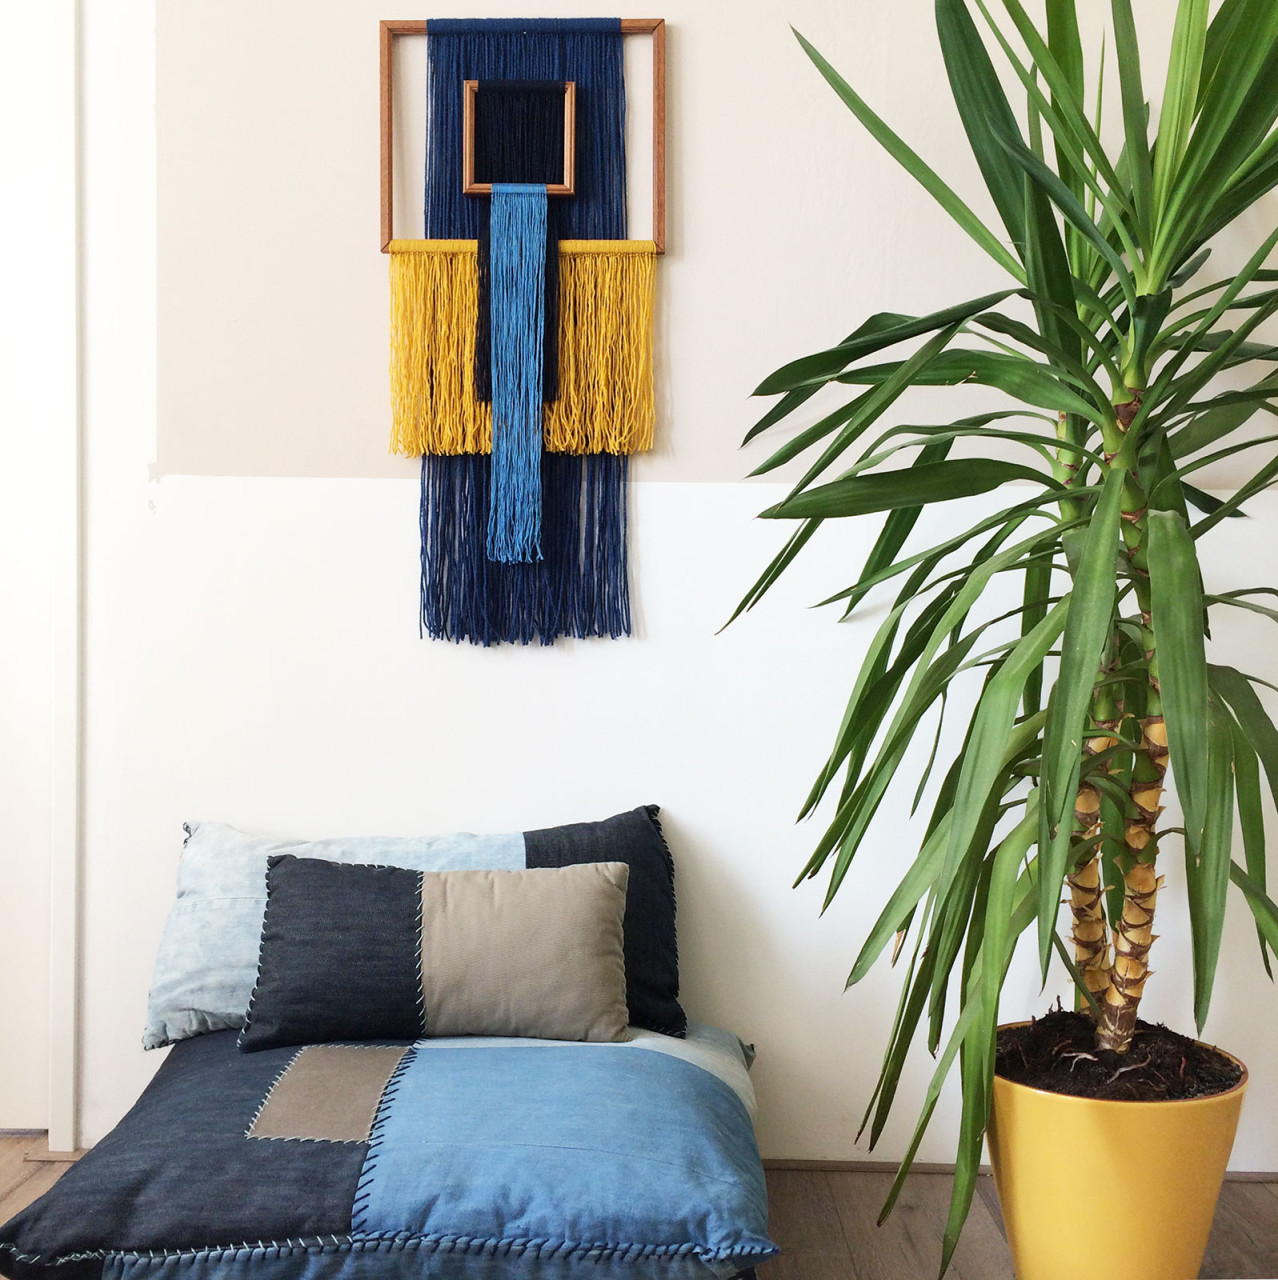 wallhanging_yarn_pillows_plant